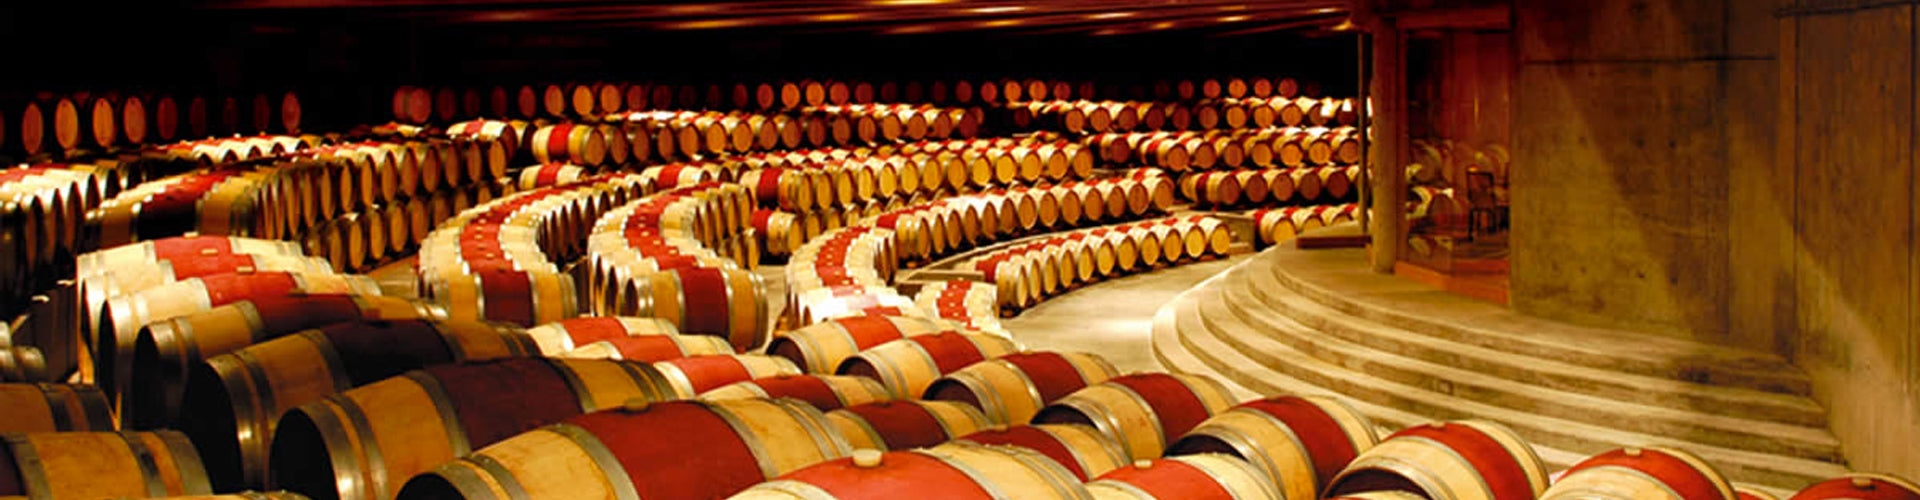 The Montes Wines Barrel Room